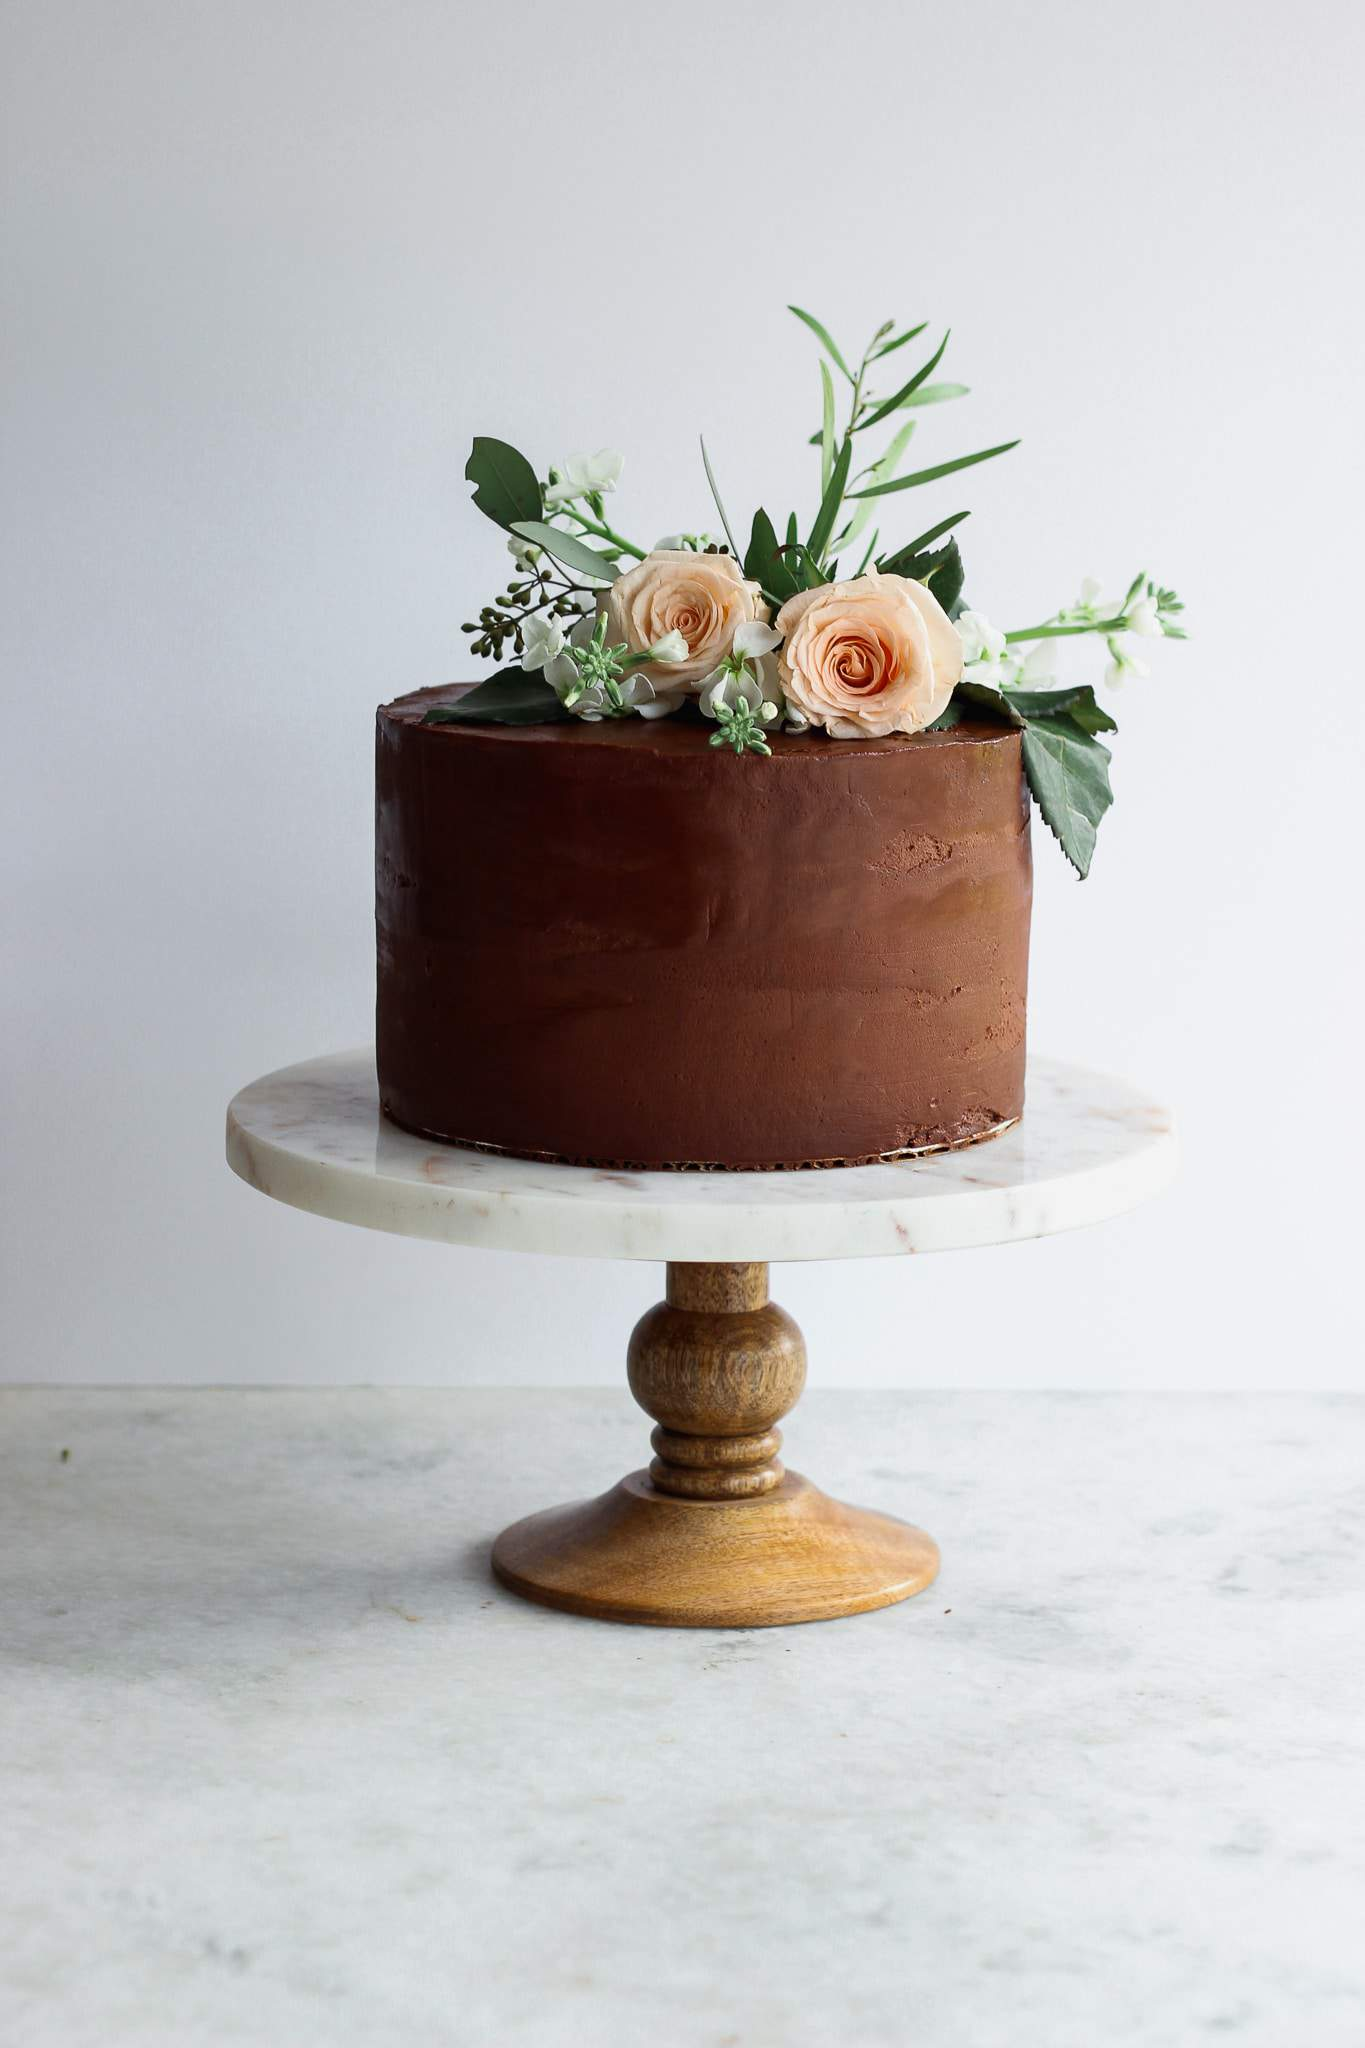 10 Ways To Make Your Cakes Look More Professional Frosting